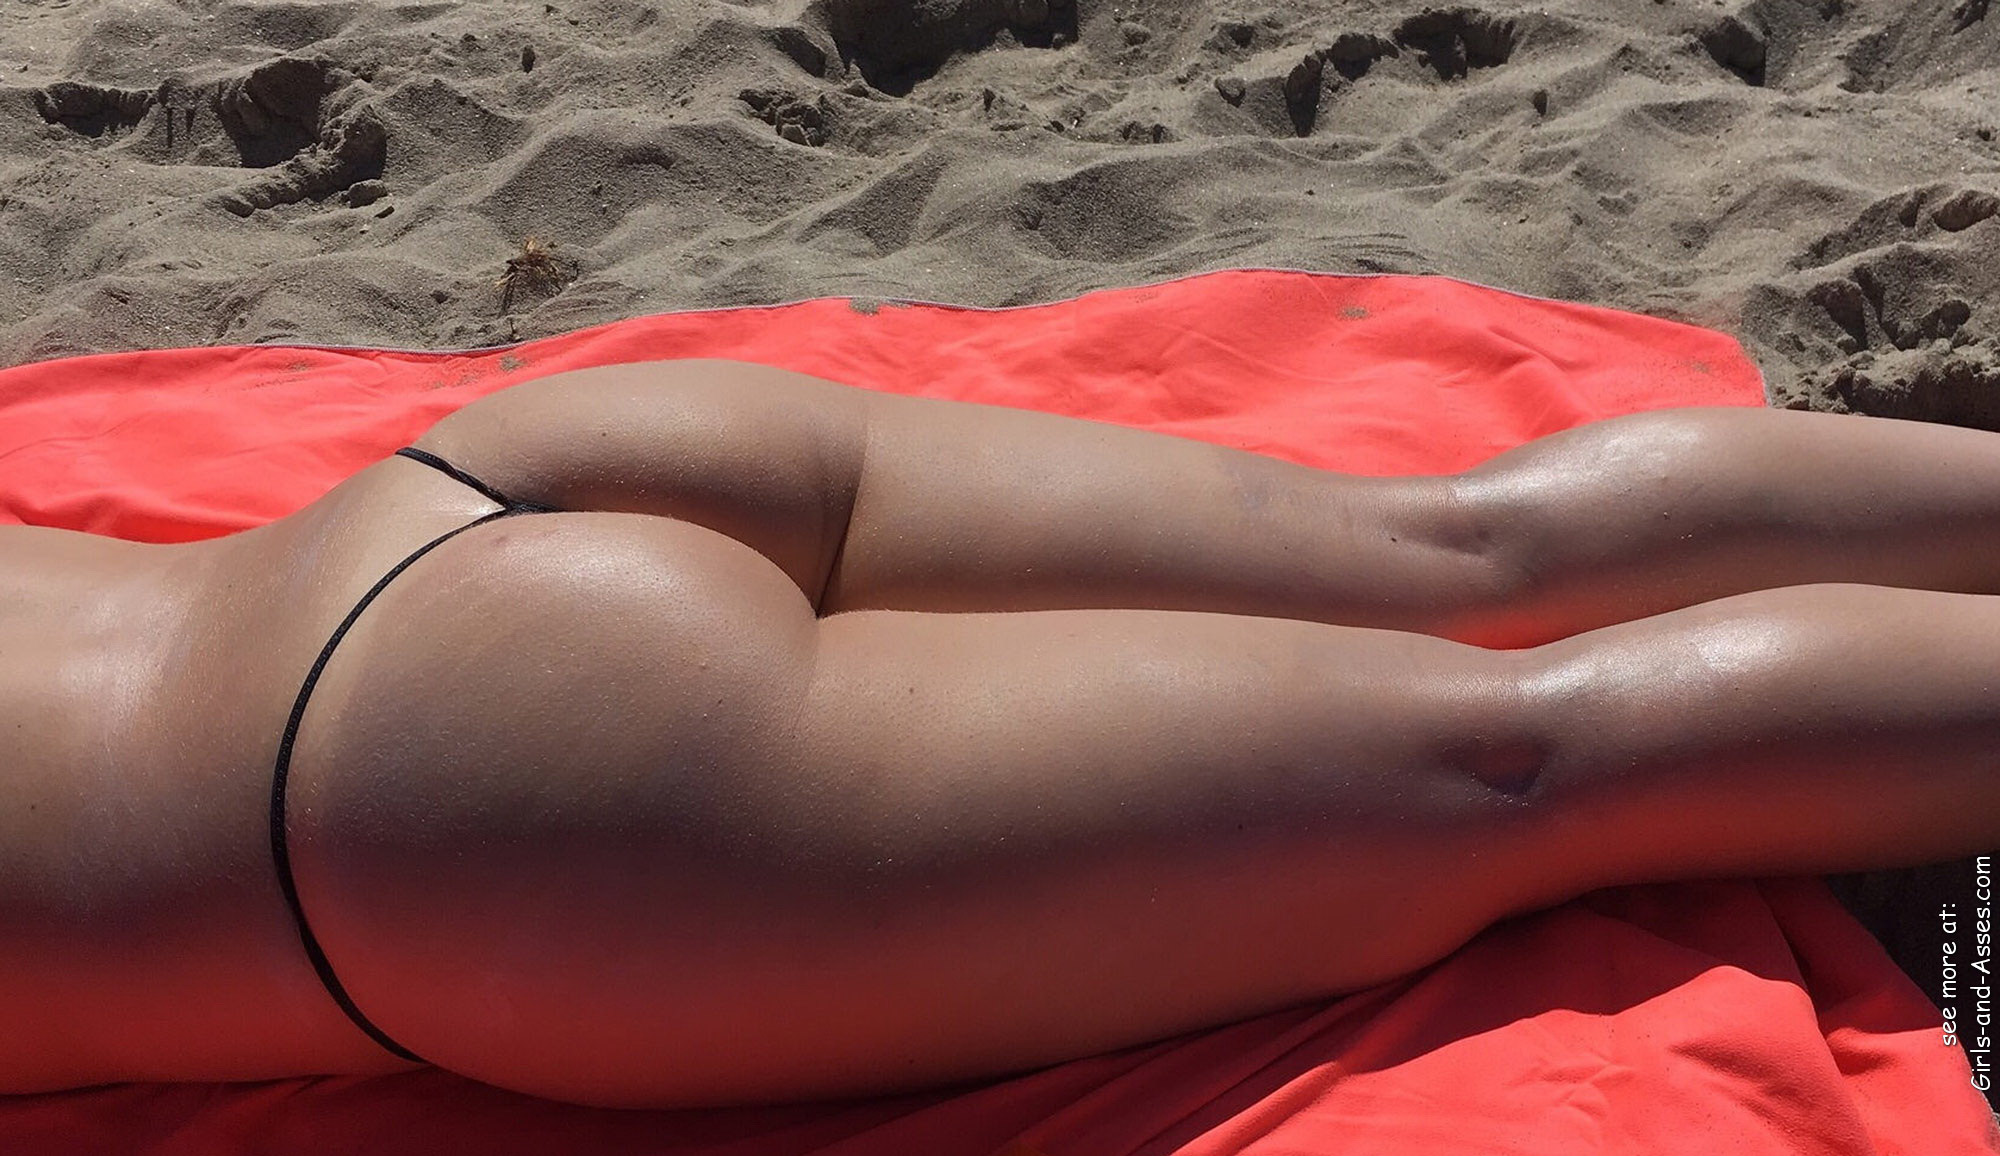 naked sunbathing tanning on the beach pic 00728